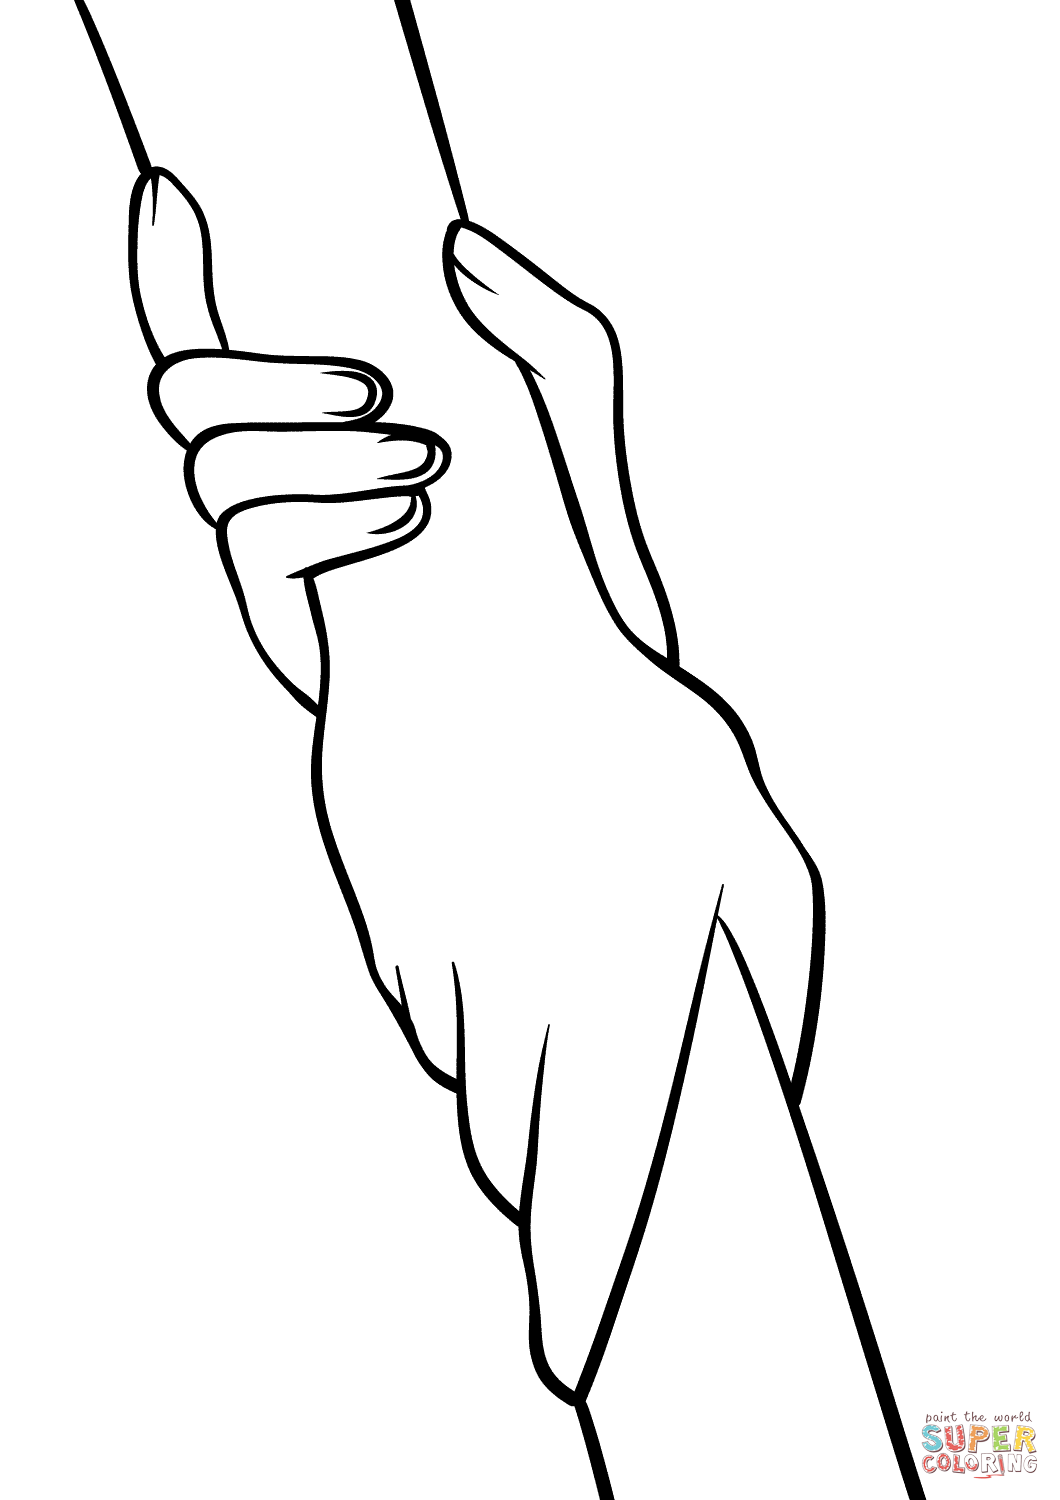 Helping Hands Coloring Page Free Printable Coloring Pages